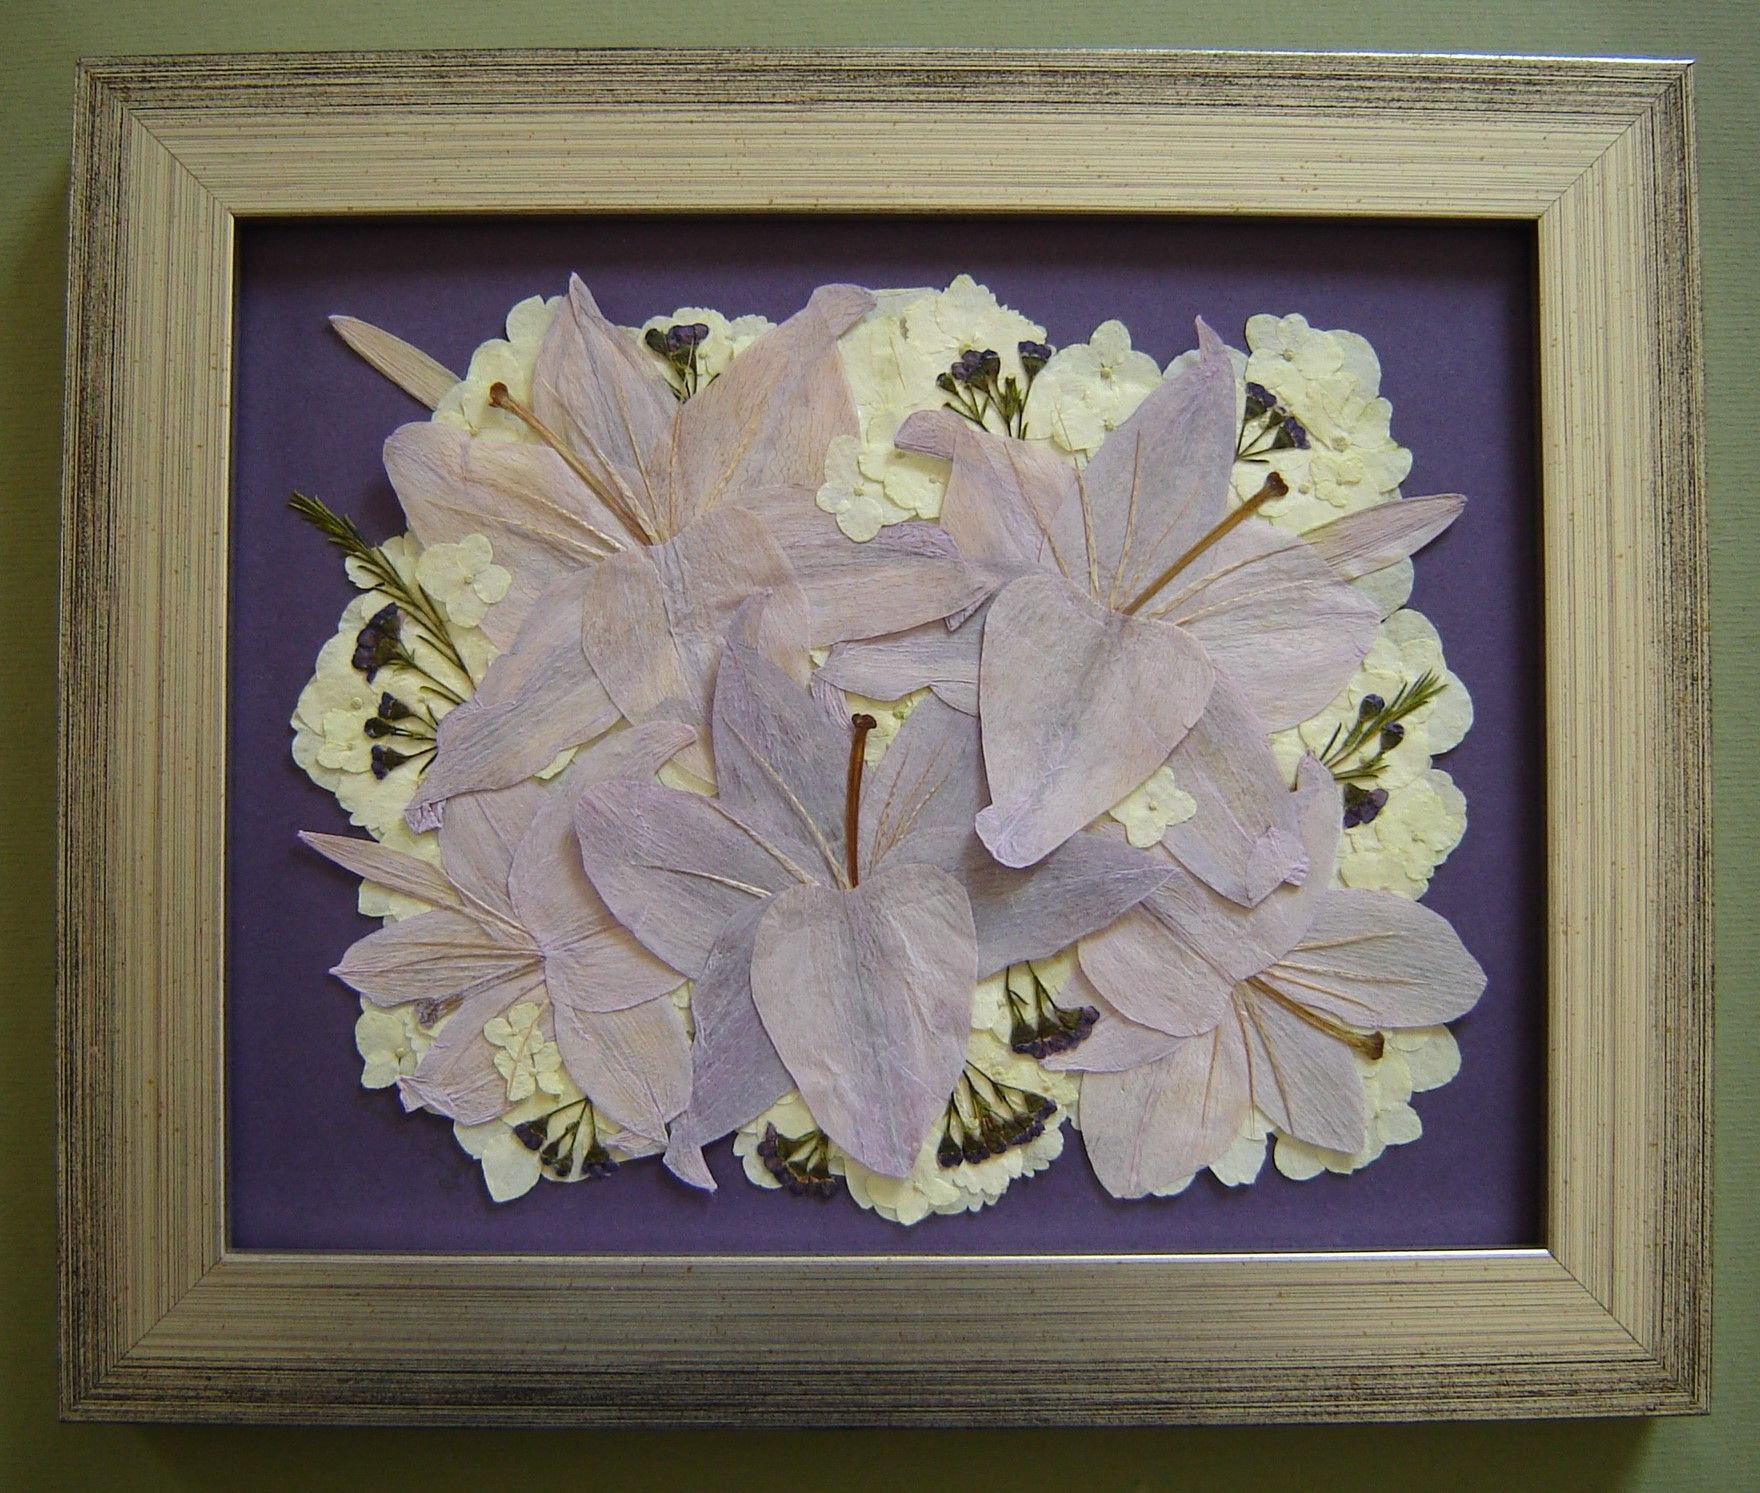 Pressed Wedding Flowers: Wedding Flower Preservation